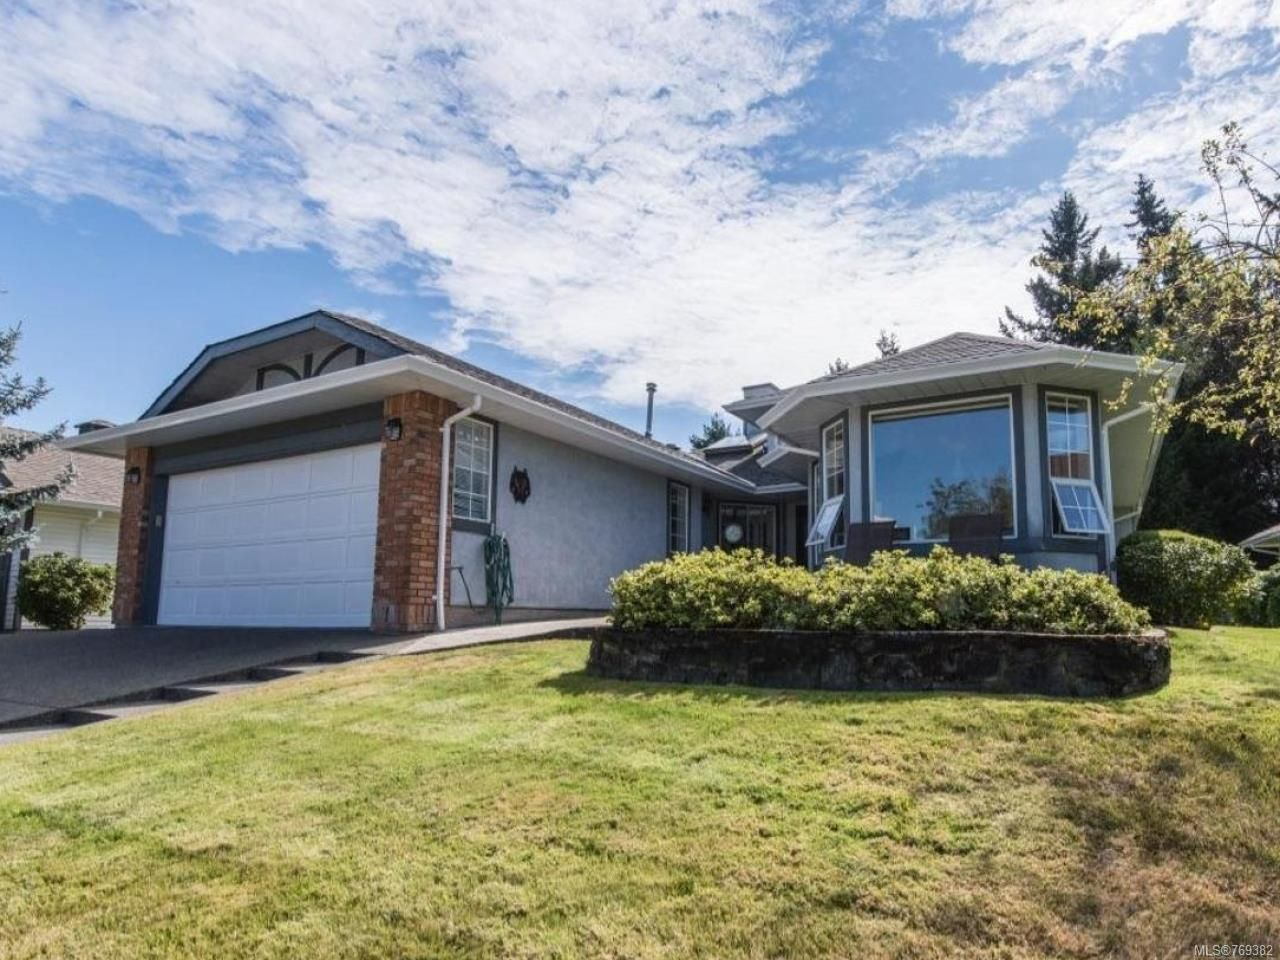 Main Photo: 3593 N Arbutus Dr in COBBLE HILL: ML Cobble Hill House for sale (Malahat & Area)  : MLS®# 769382